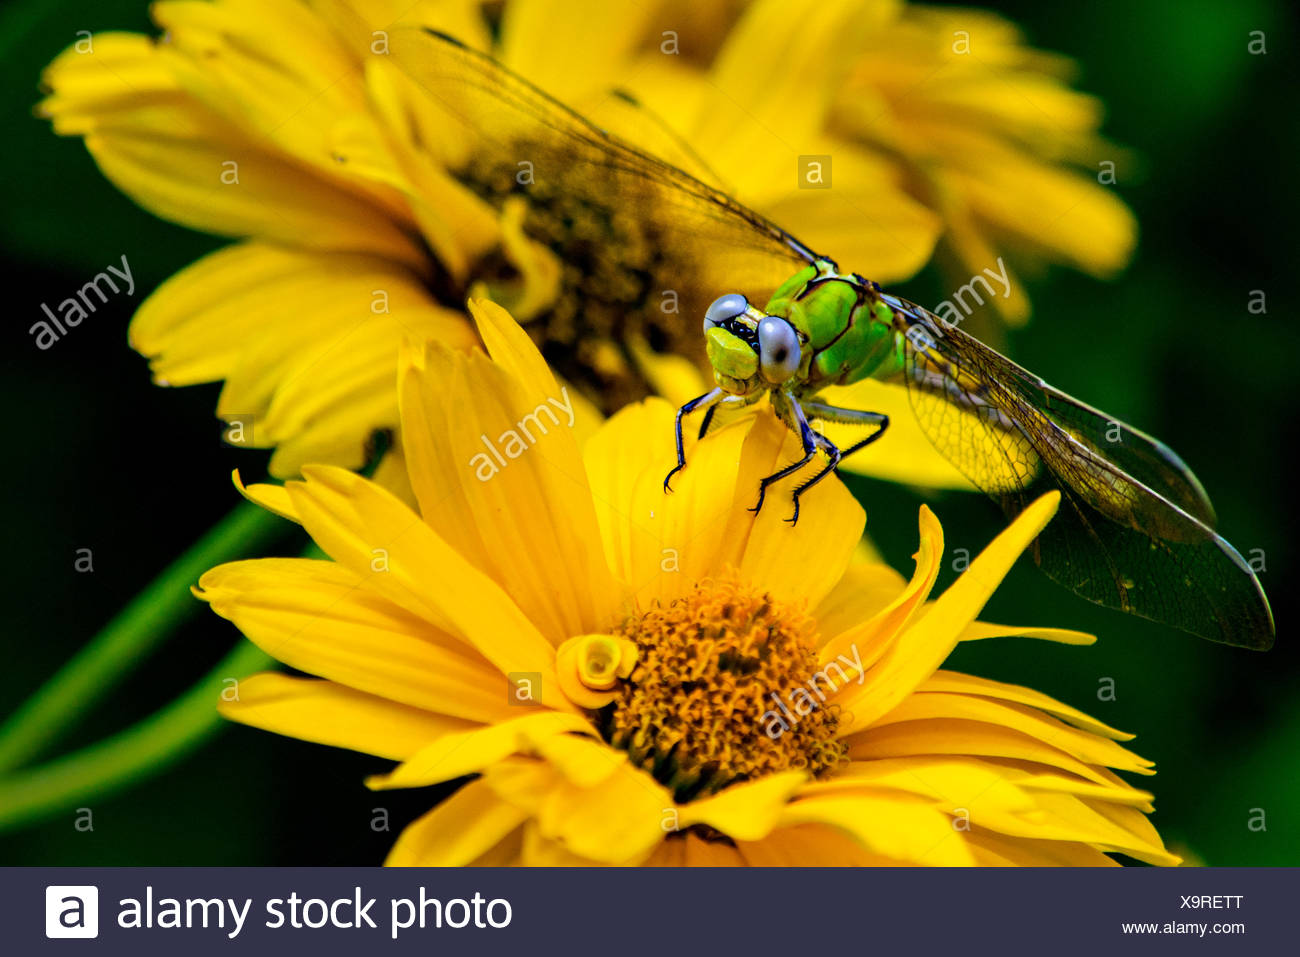 Dragonfly sitting on yellow flower - Stock Image